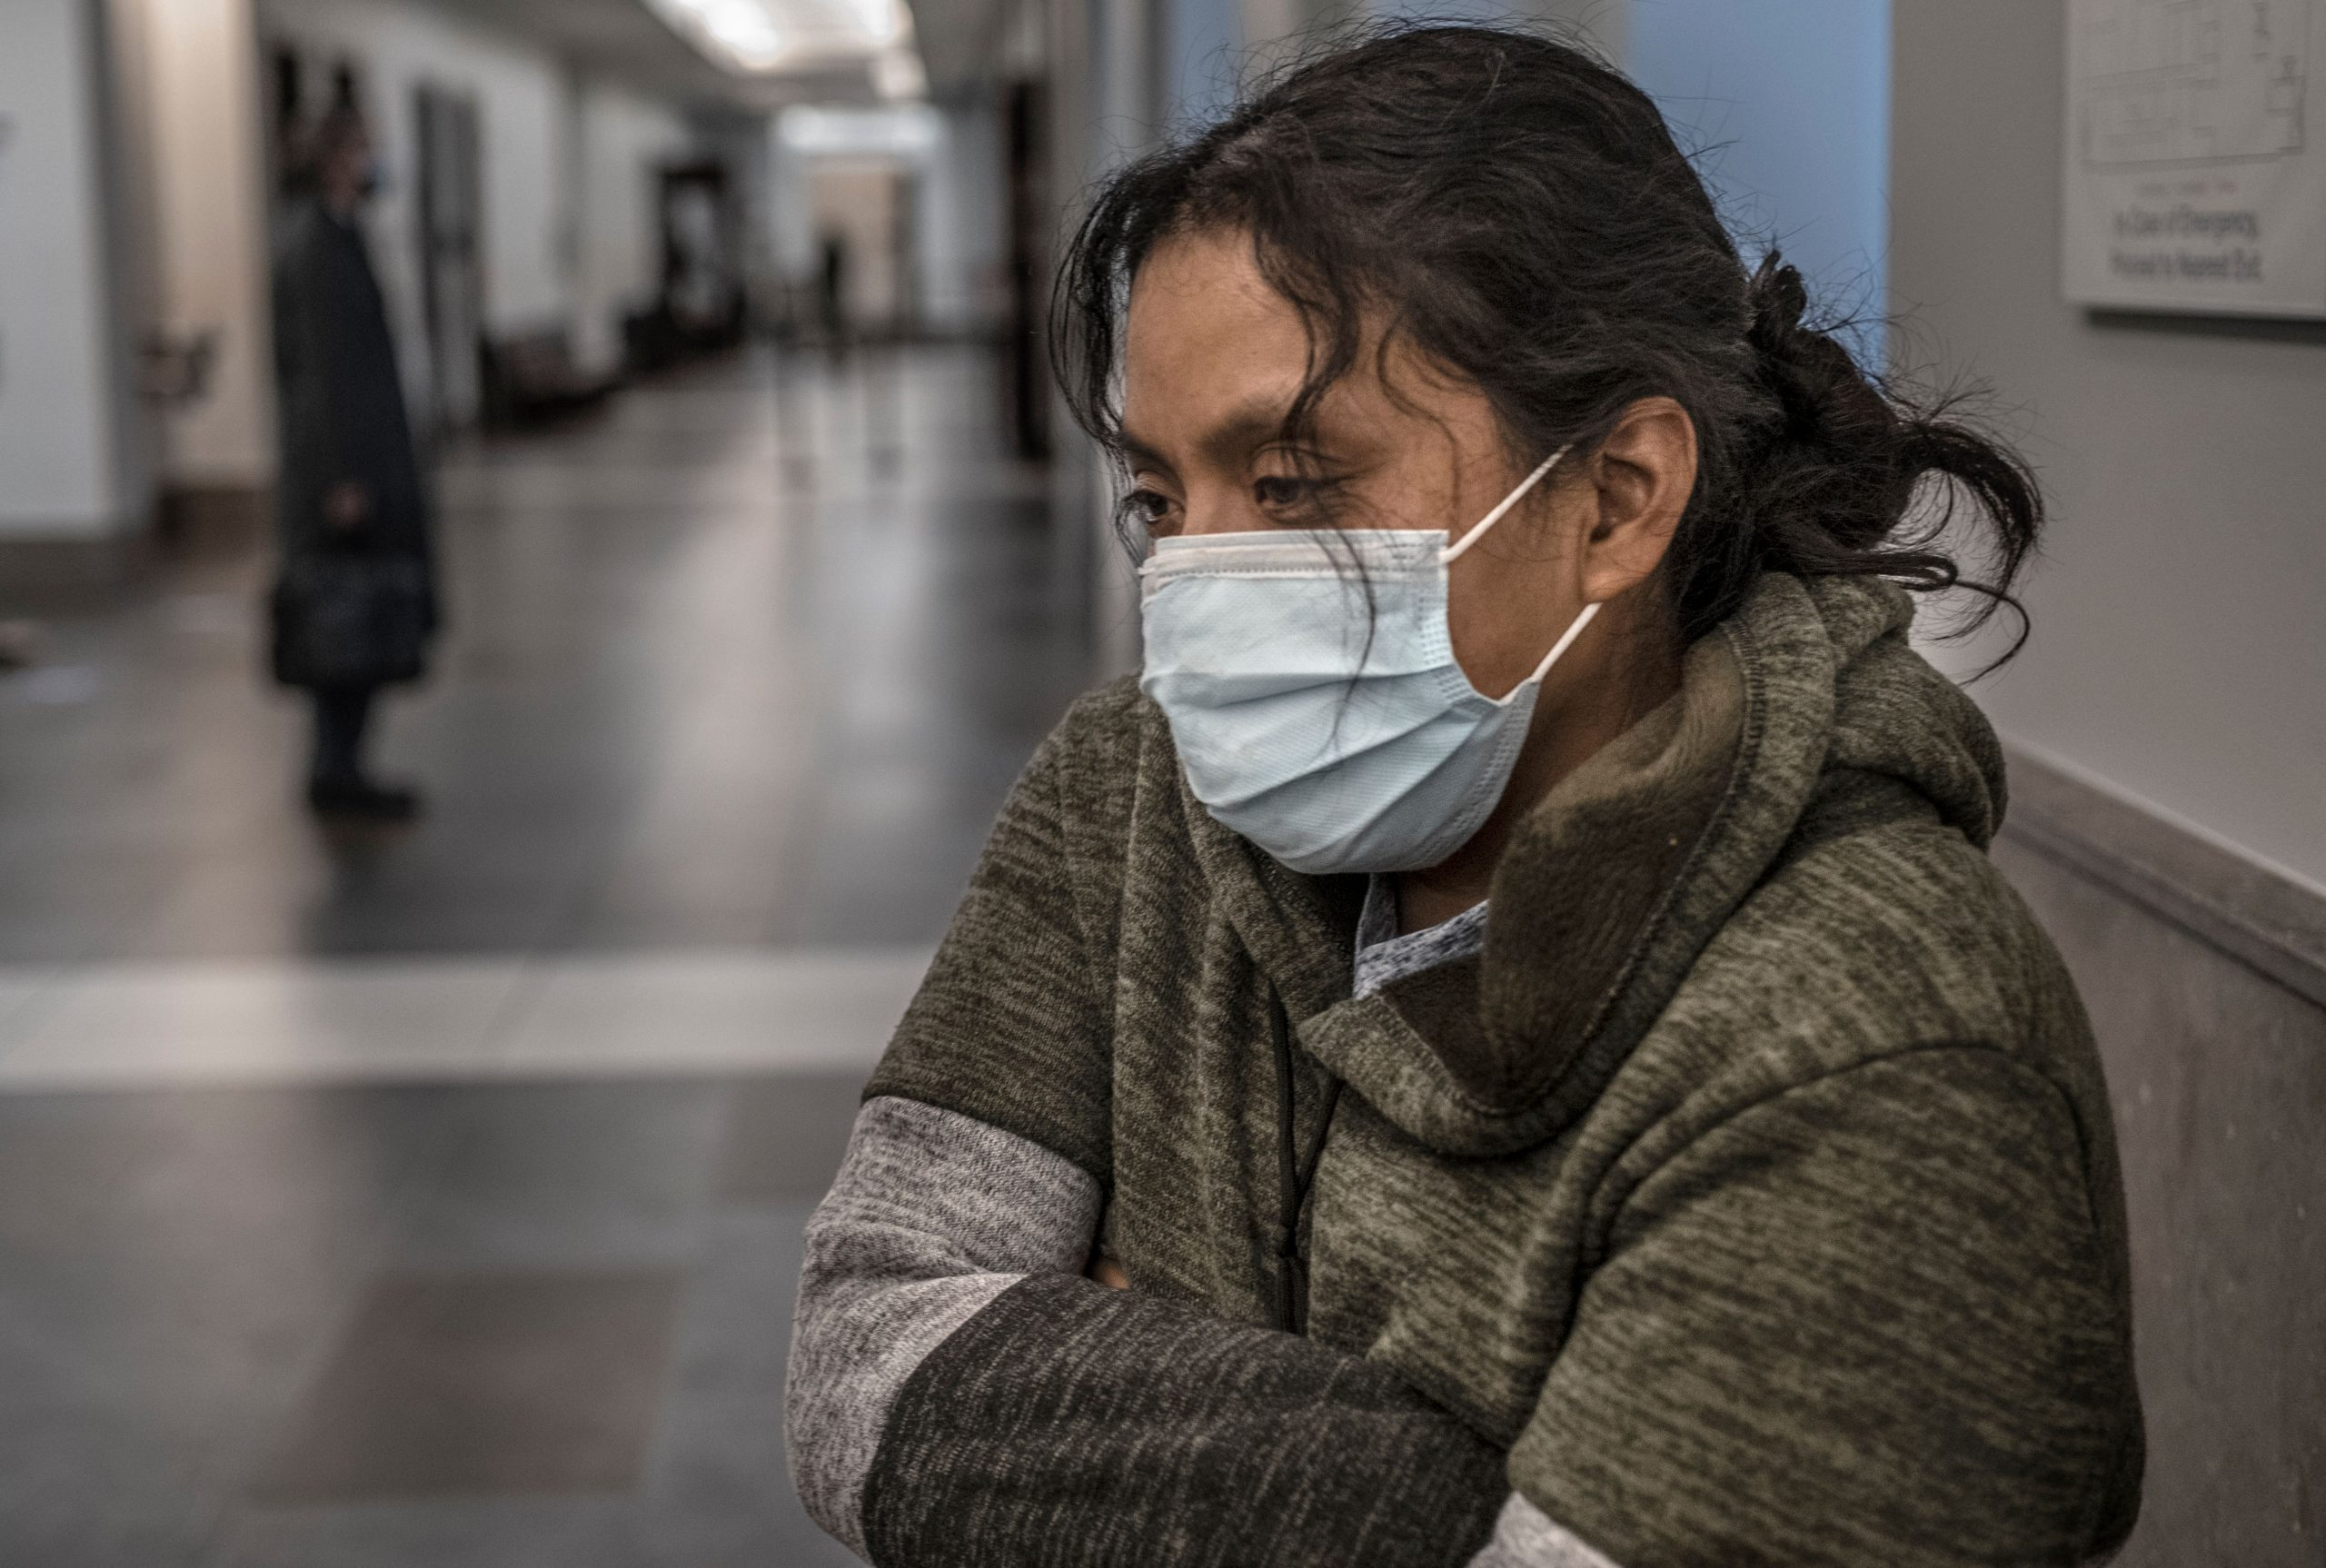 Maria Hernandez waits in the hallway of the A.A. Birch Building outside General Sessions Court to find out if she will get financial help to stall her eviction. (Photo: John Partipilo)